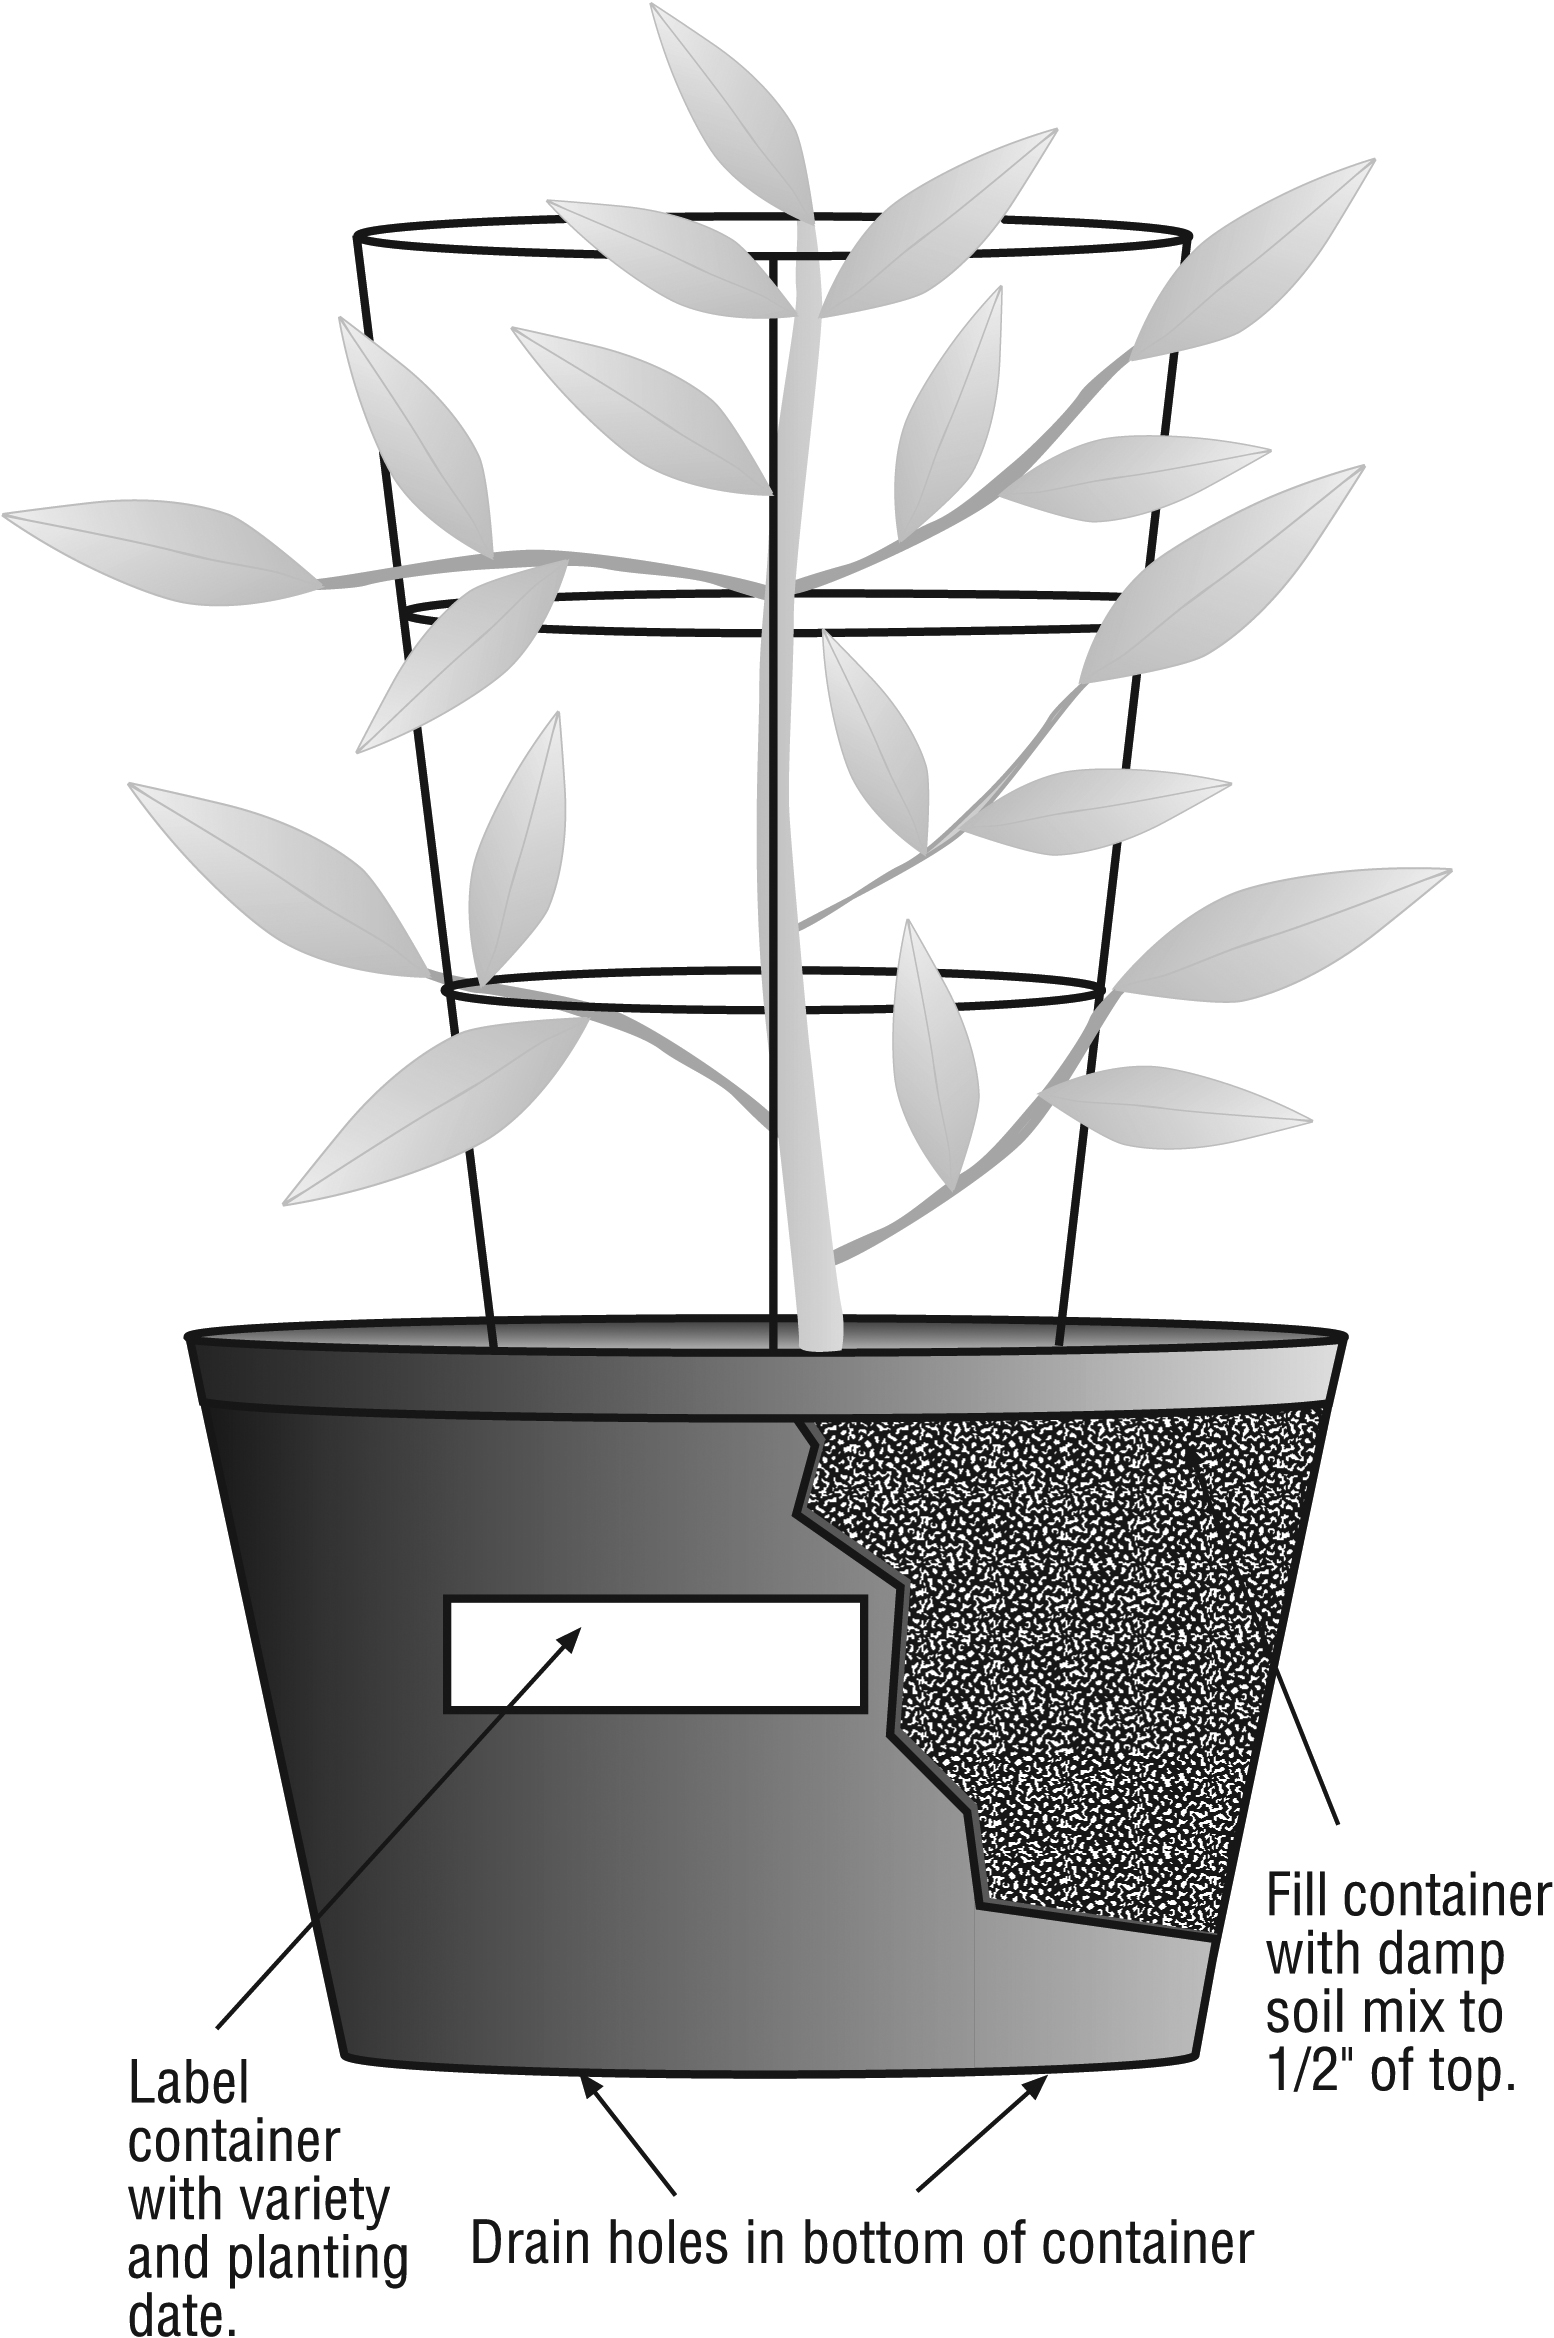 "drawing of container with plant: label container with variety and planting date; drain holes in bottom of container; fill container with damp soil mix to 1/2"" of top."